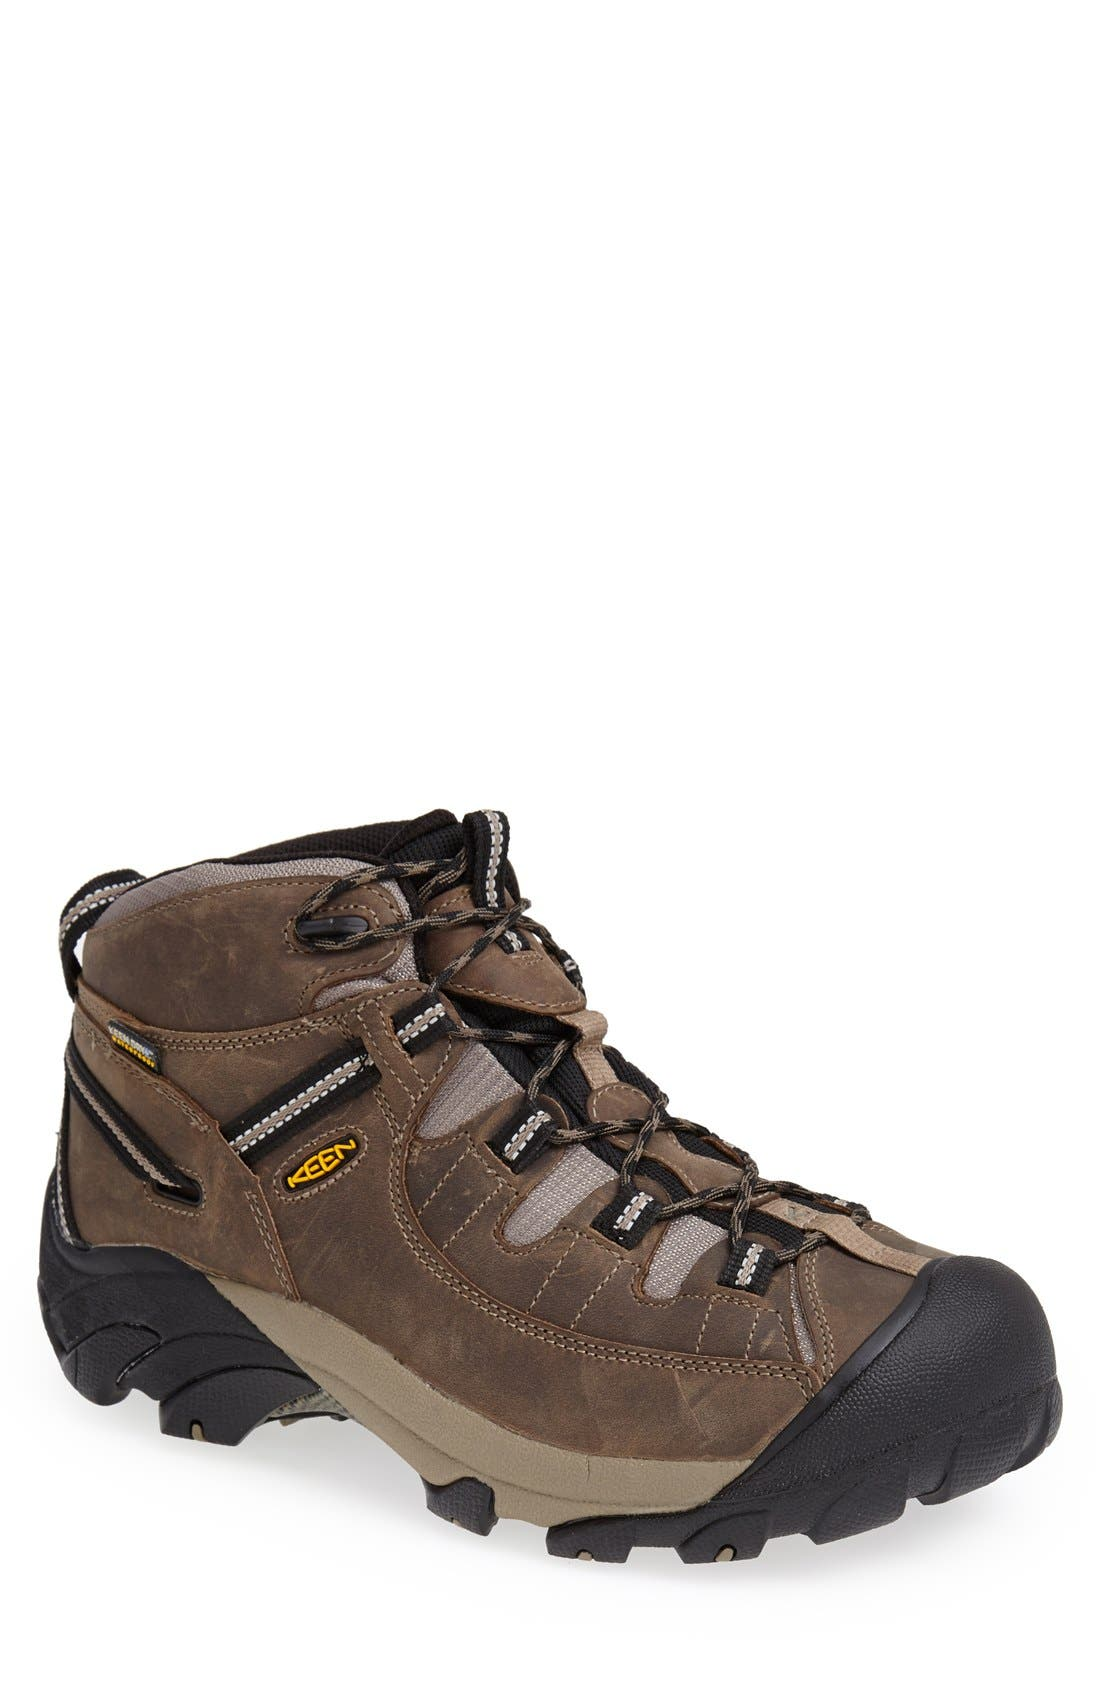 Main Image - Keen 'Targhee II Mid' Hiking Boot (Men)